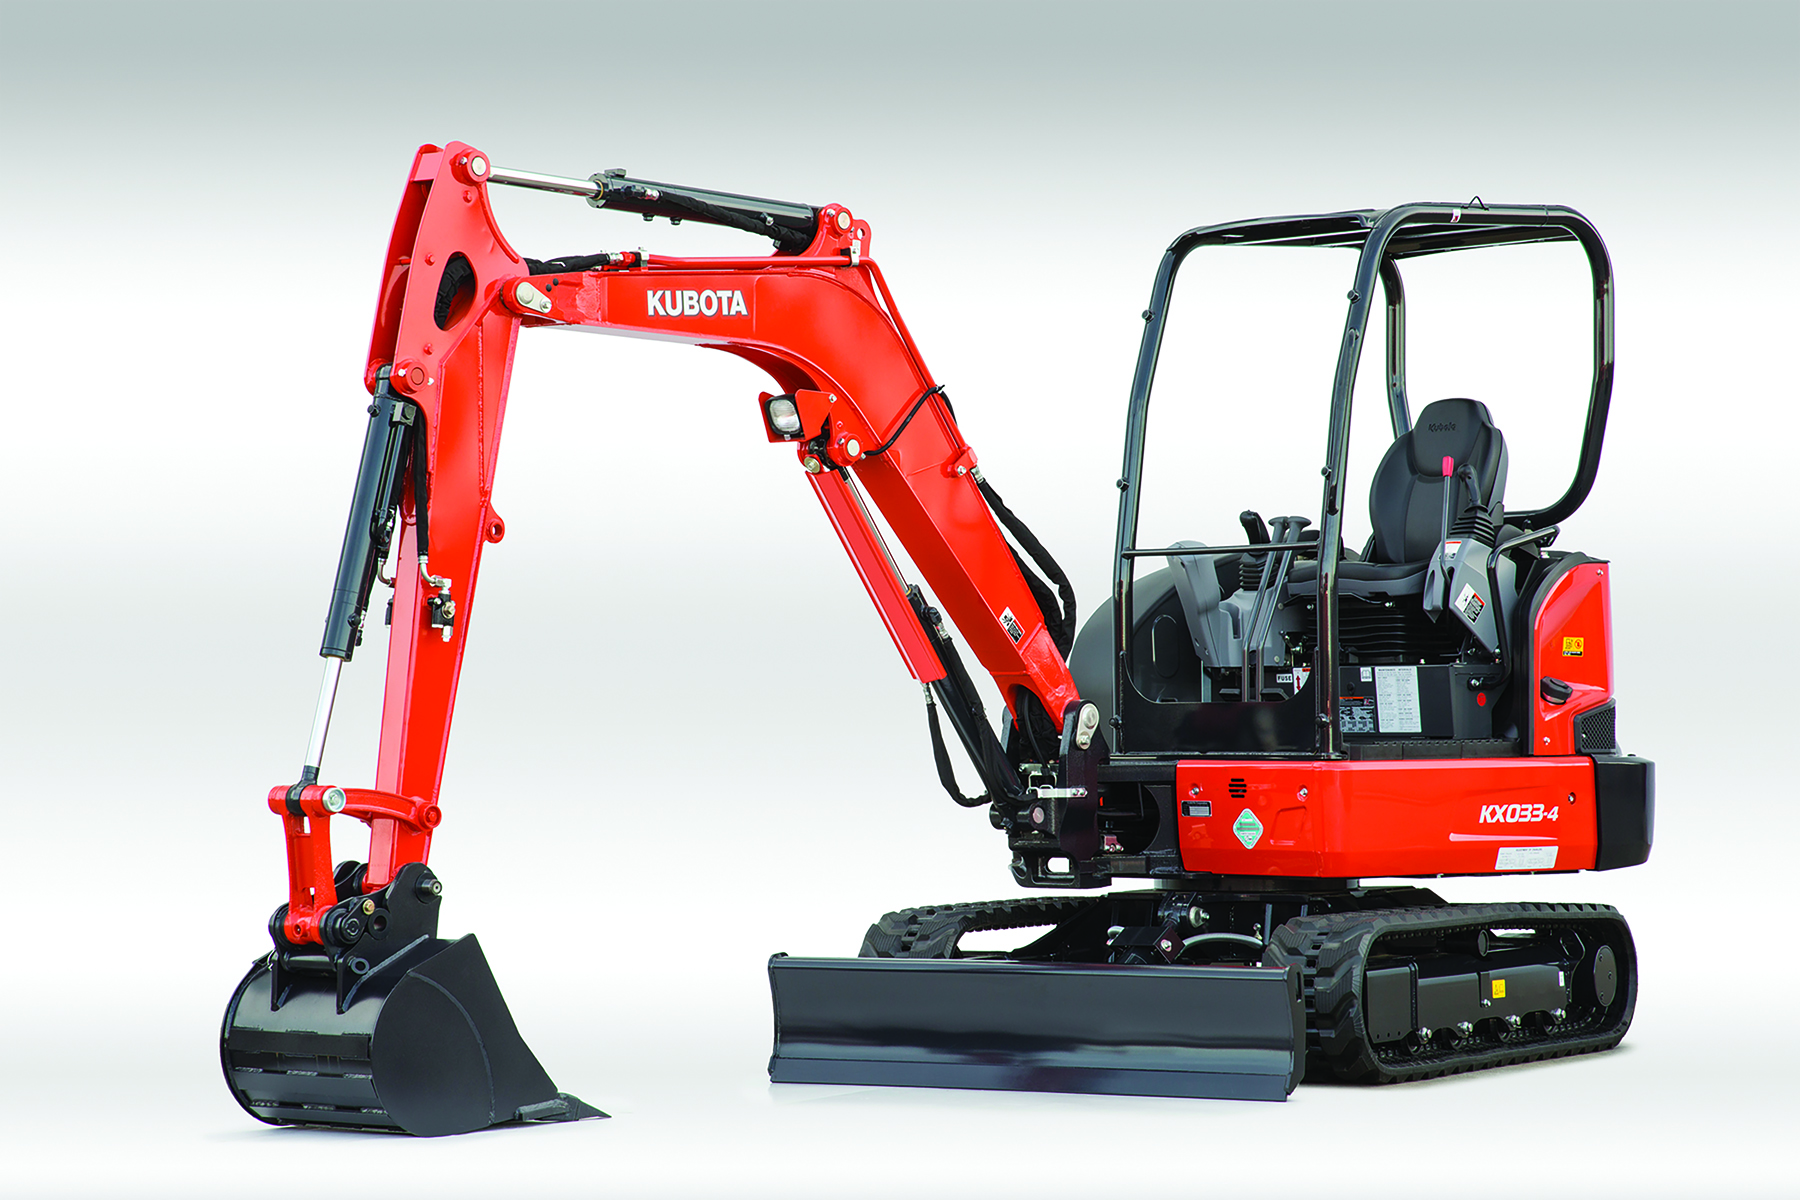 Kubota Excavator Parts : Shop kubota compact excavators coleman equipment